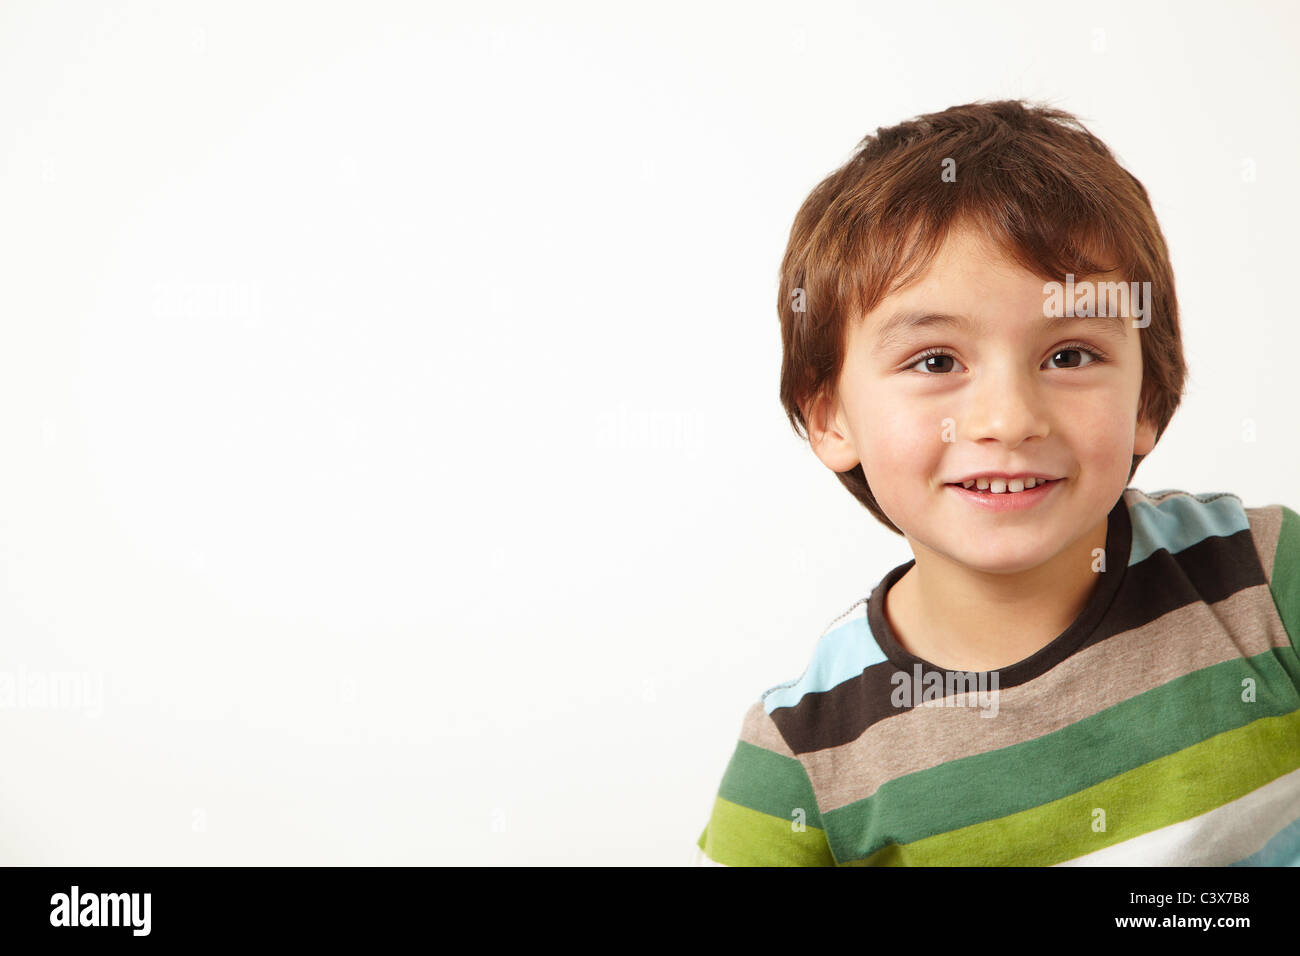 Young boy smiling on white background - Stock Image